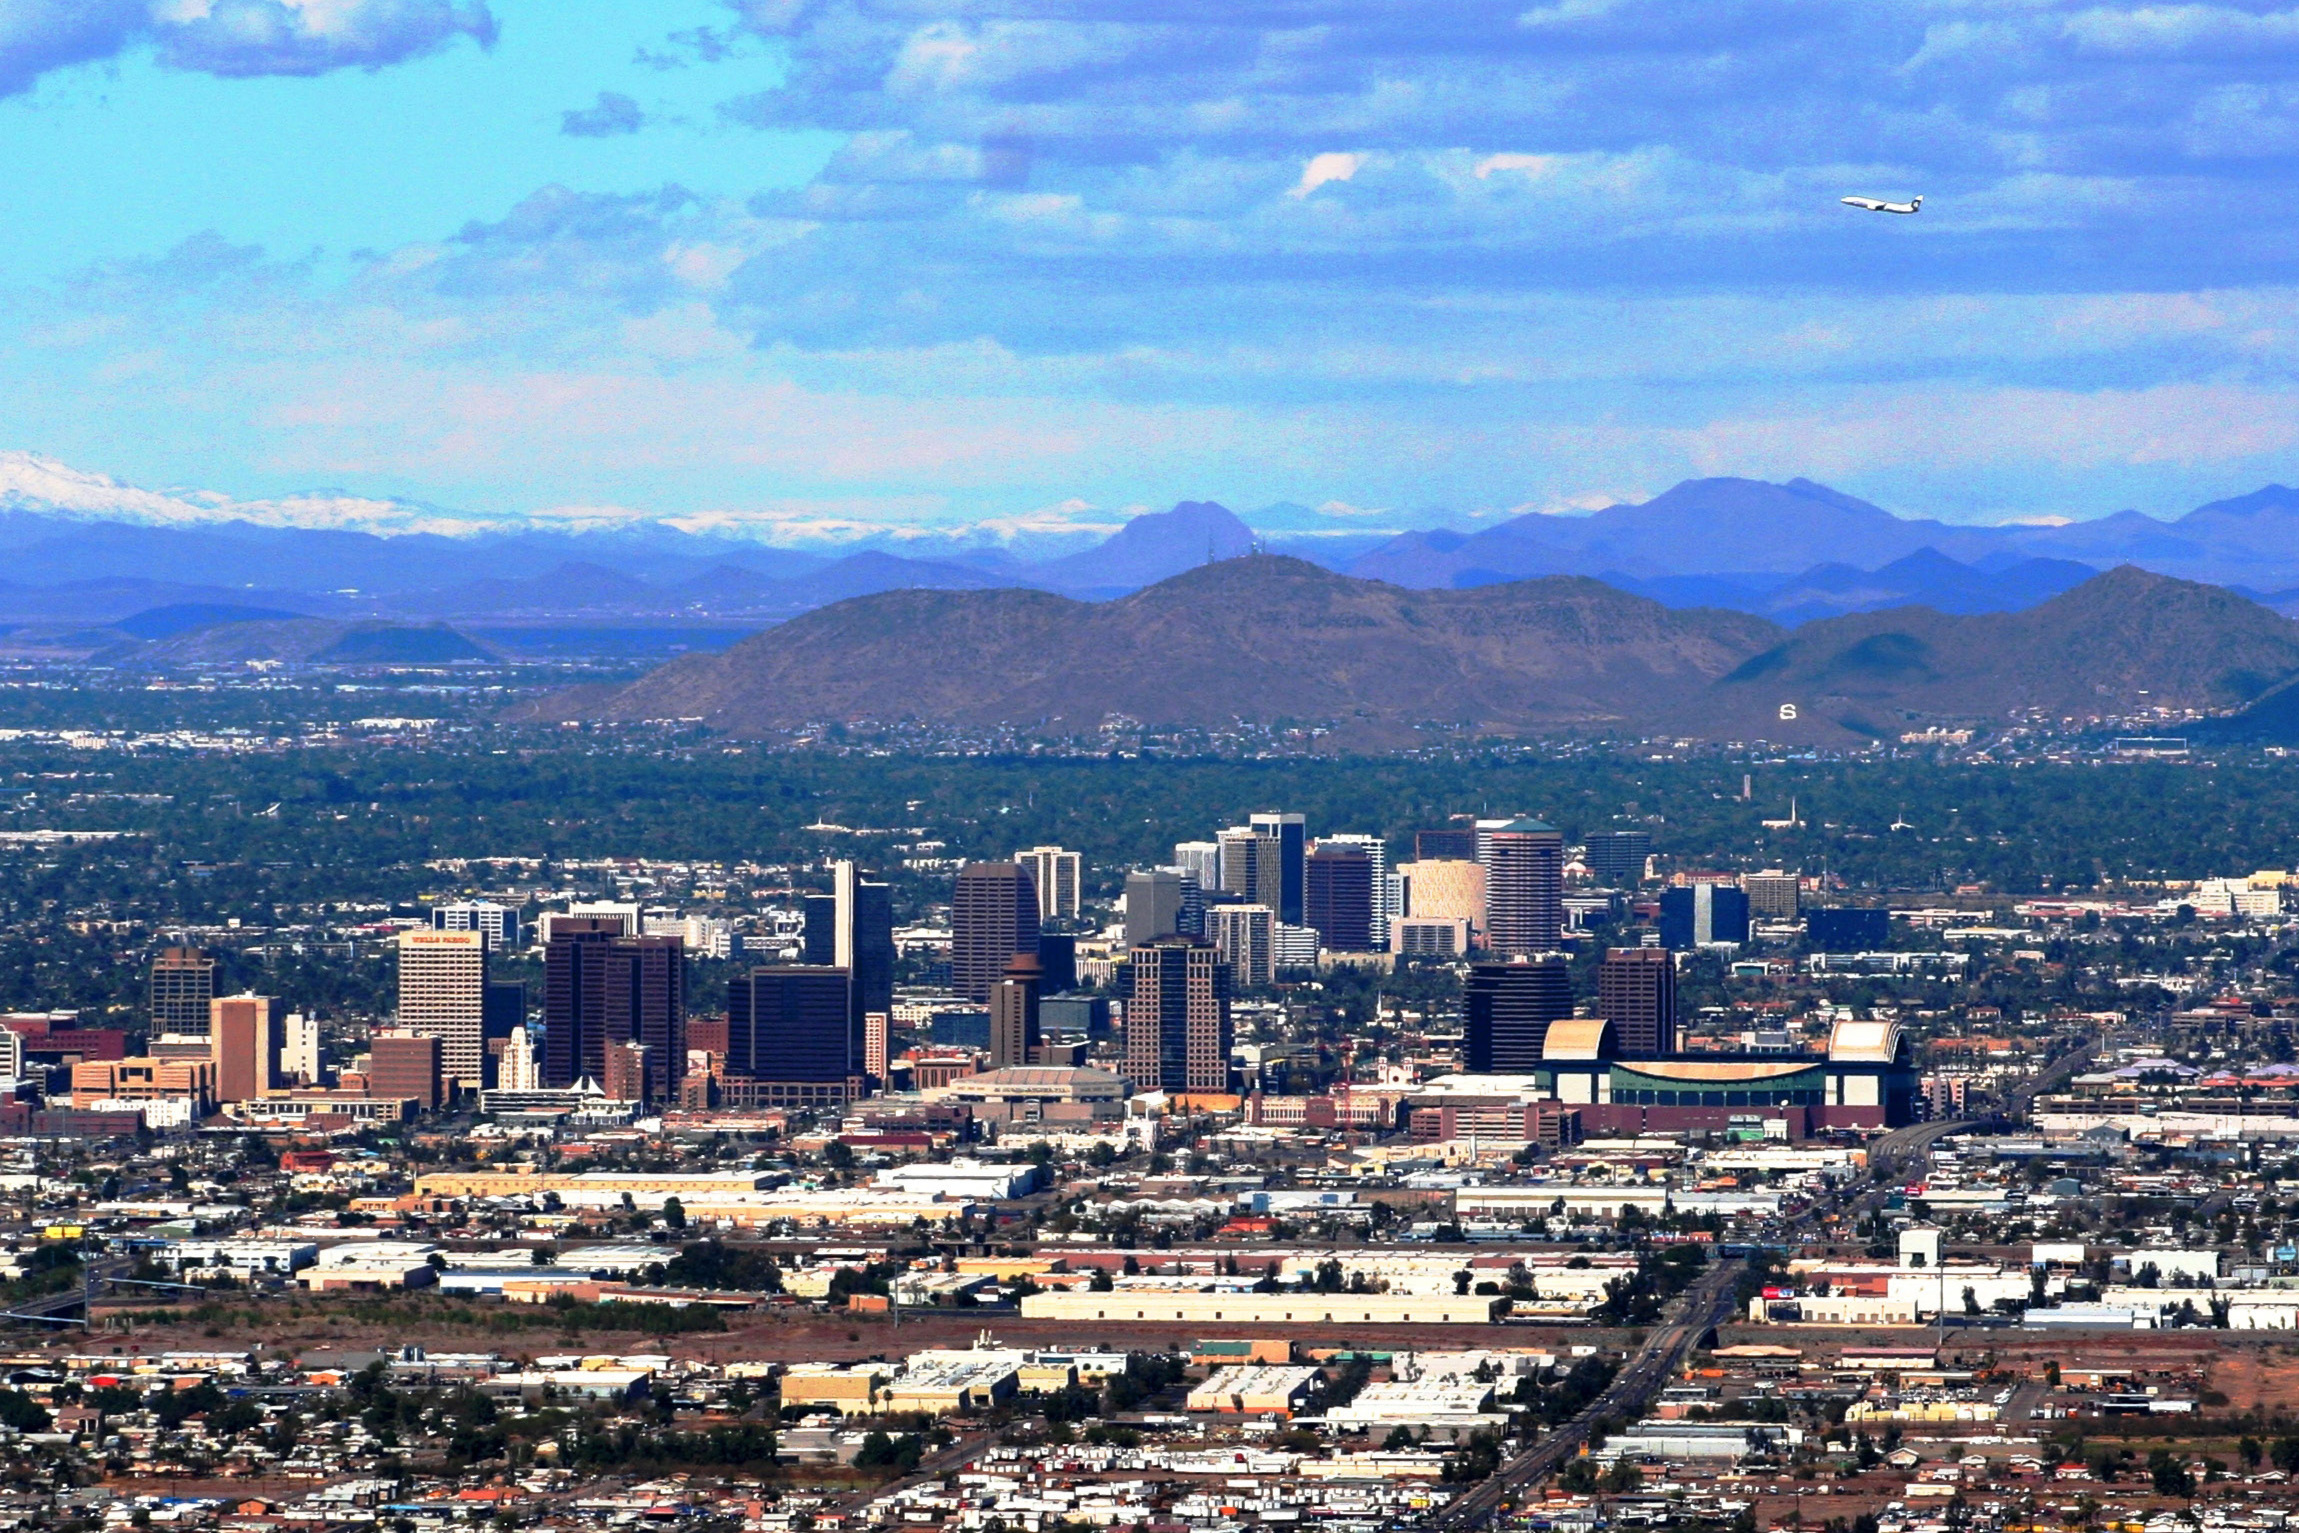 northern-skyline-downtown-phoenix-arizona.jpg